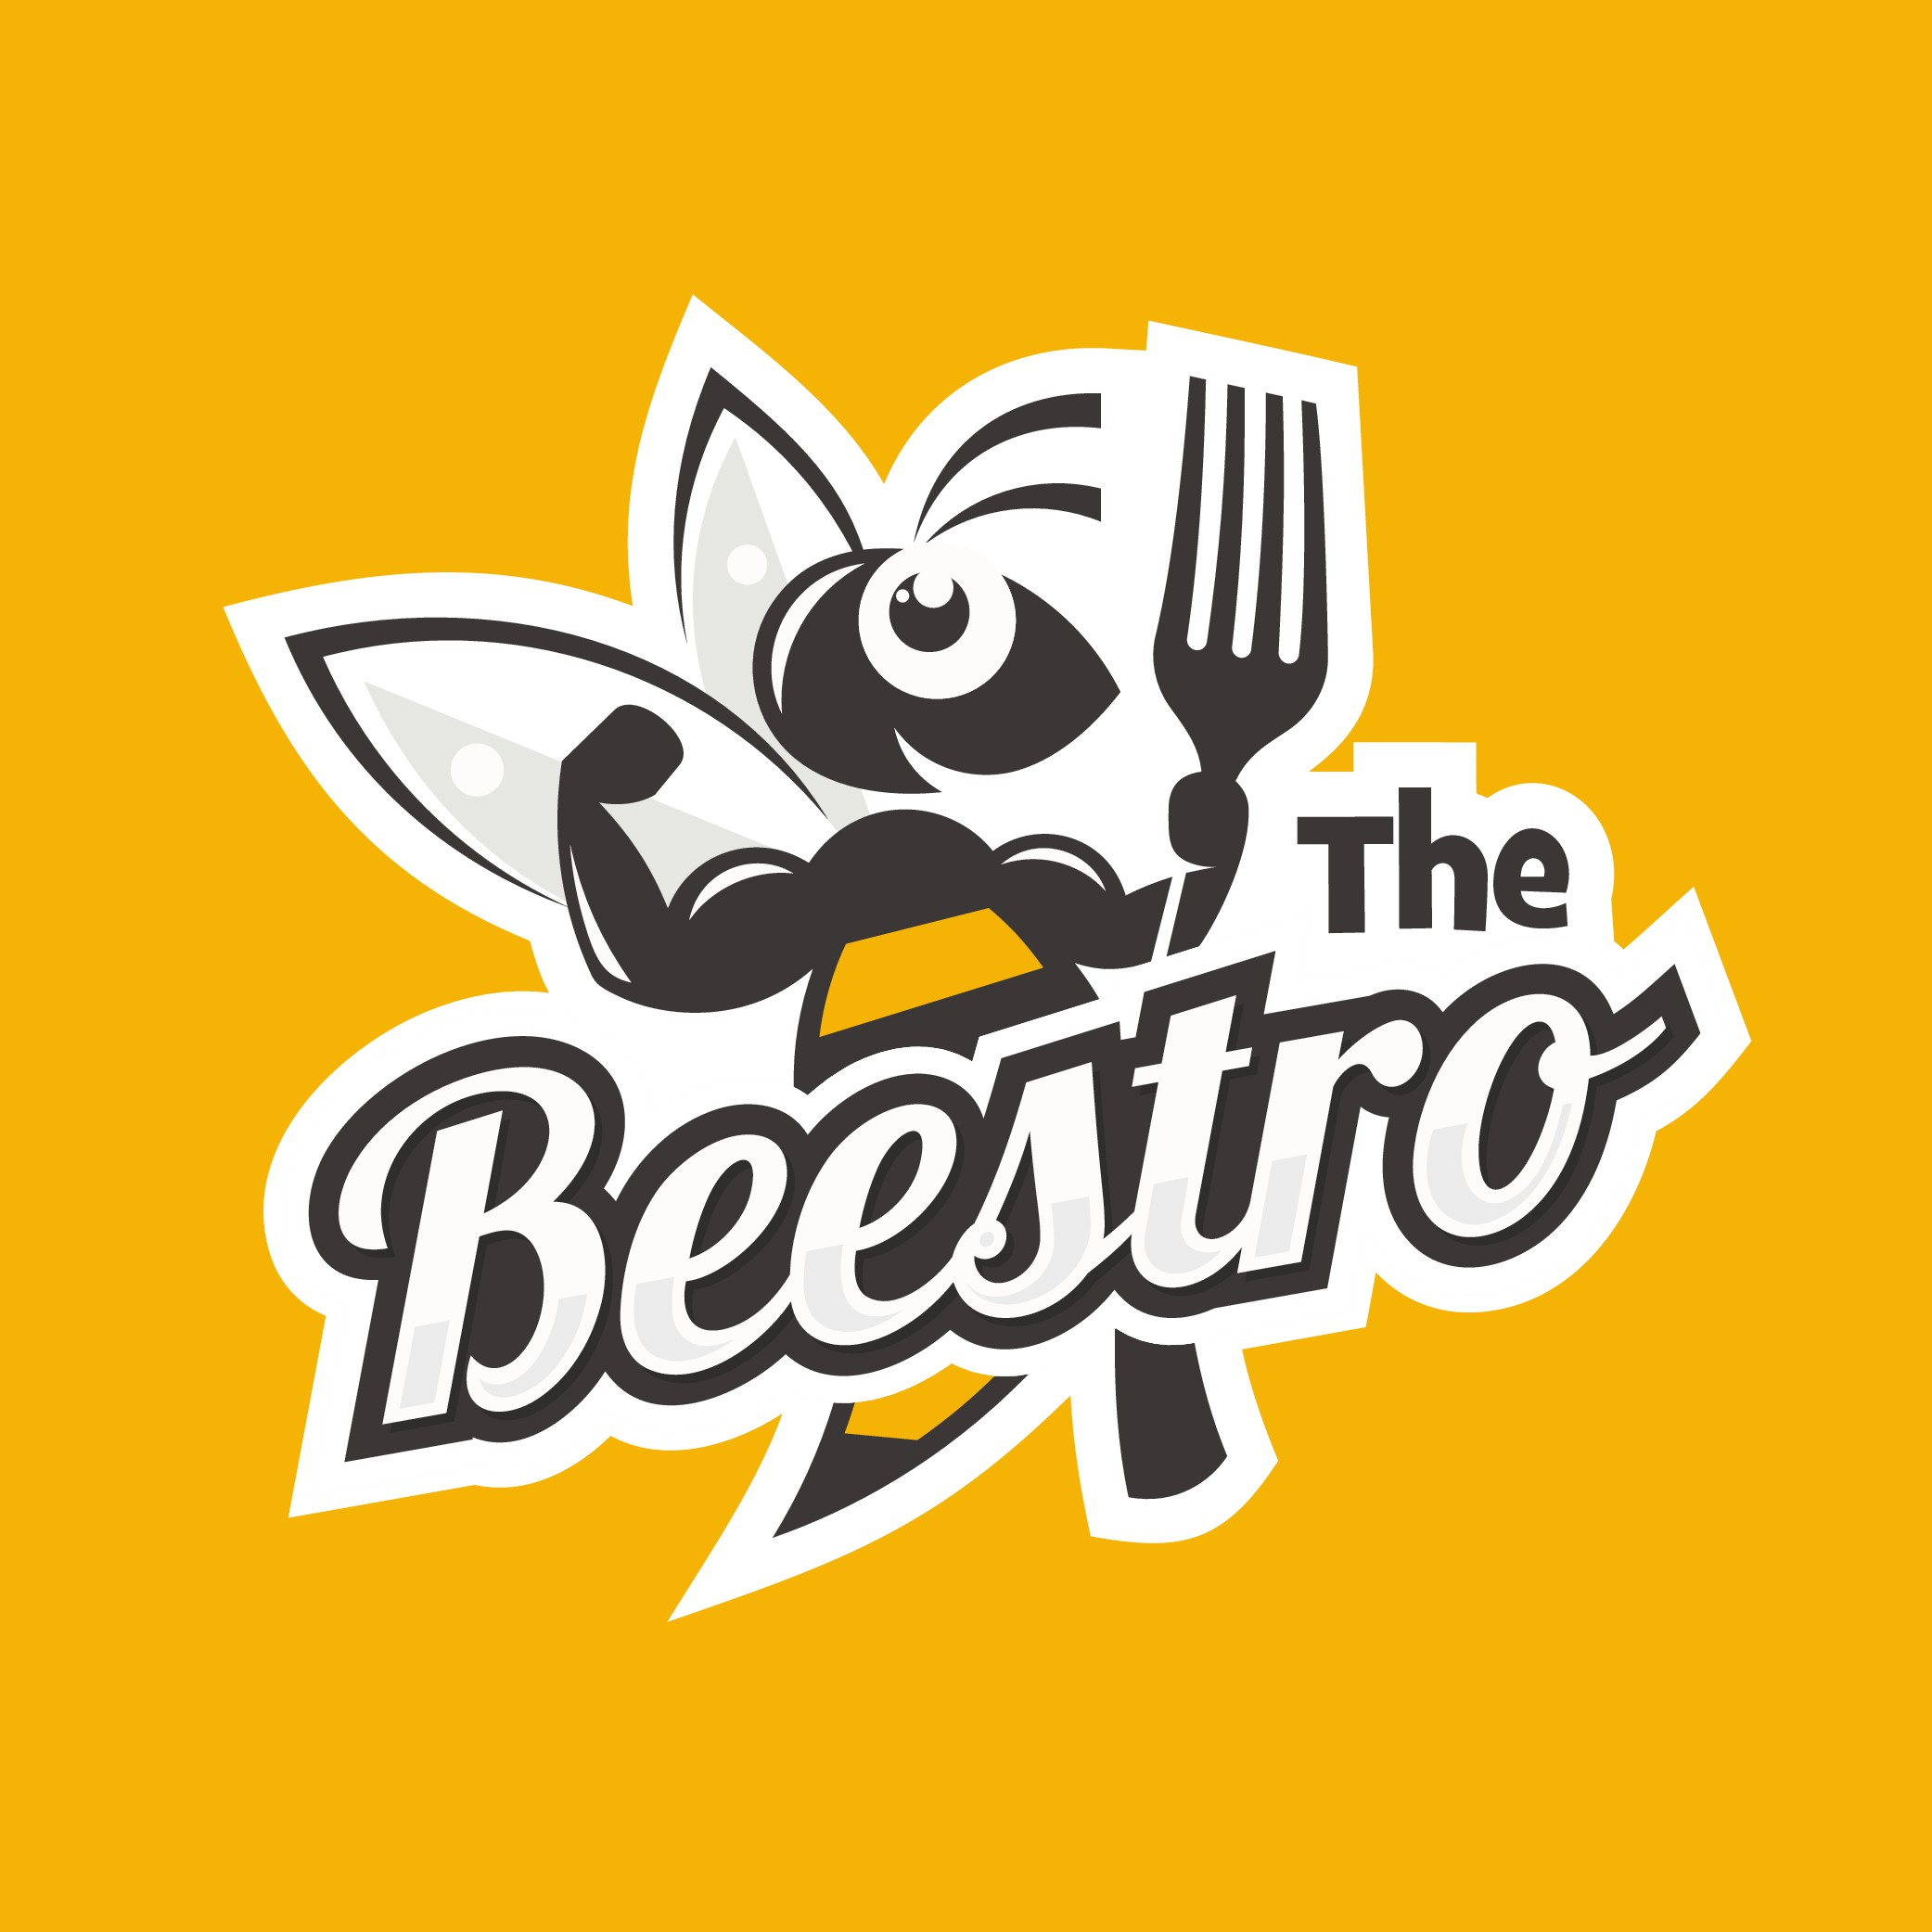 Beast mode at the BEEstro